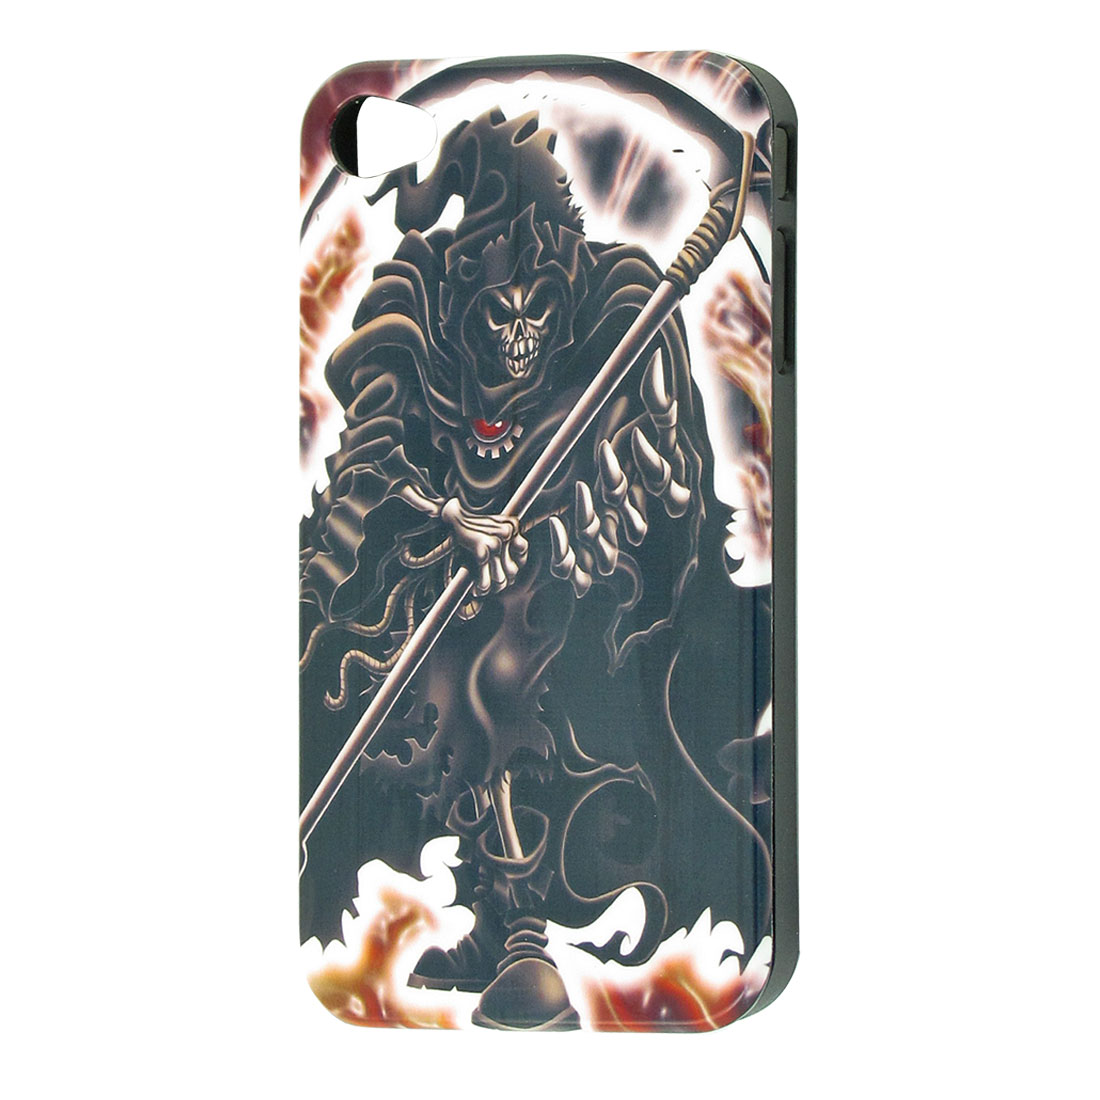 Black Hard Plastic Evil Pattern Back Case Cover for iPhone 4 4G